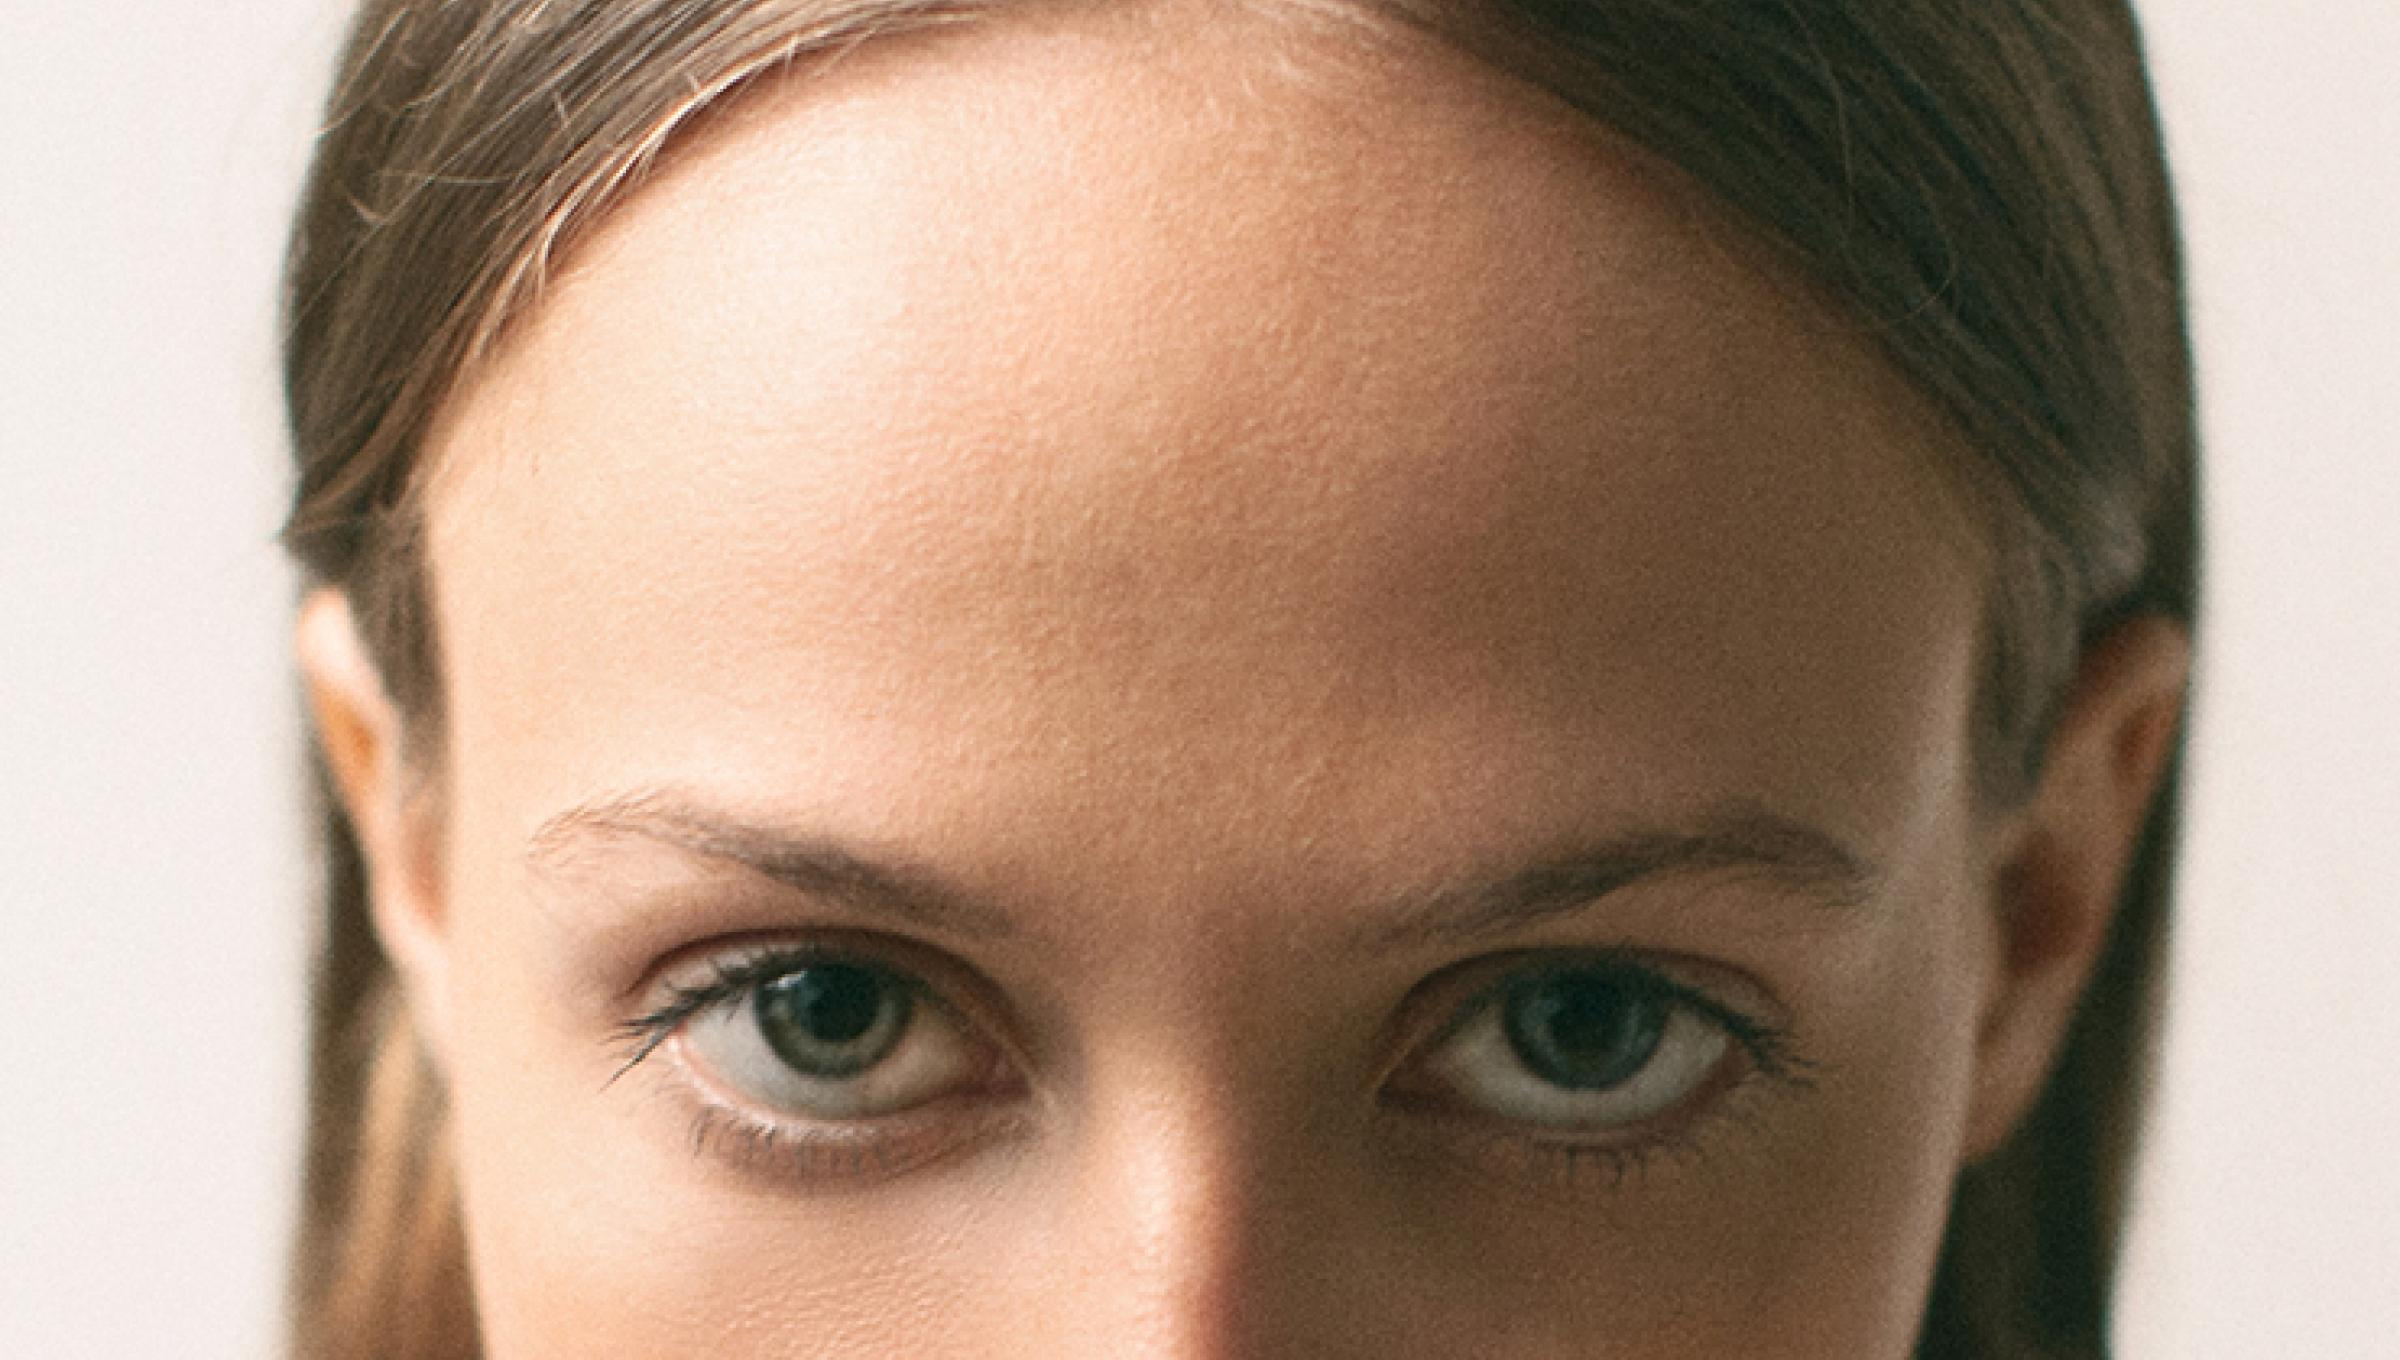 a zoomed in image of a young woman's forehead and eyes